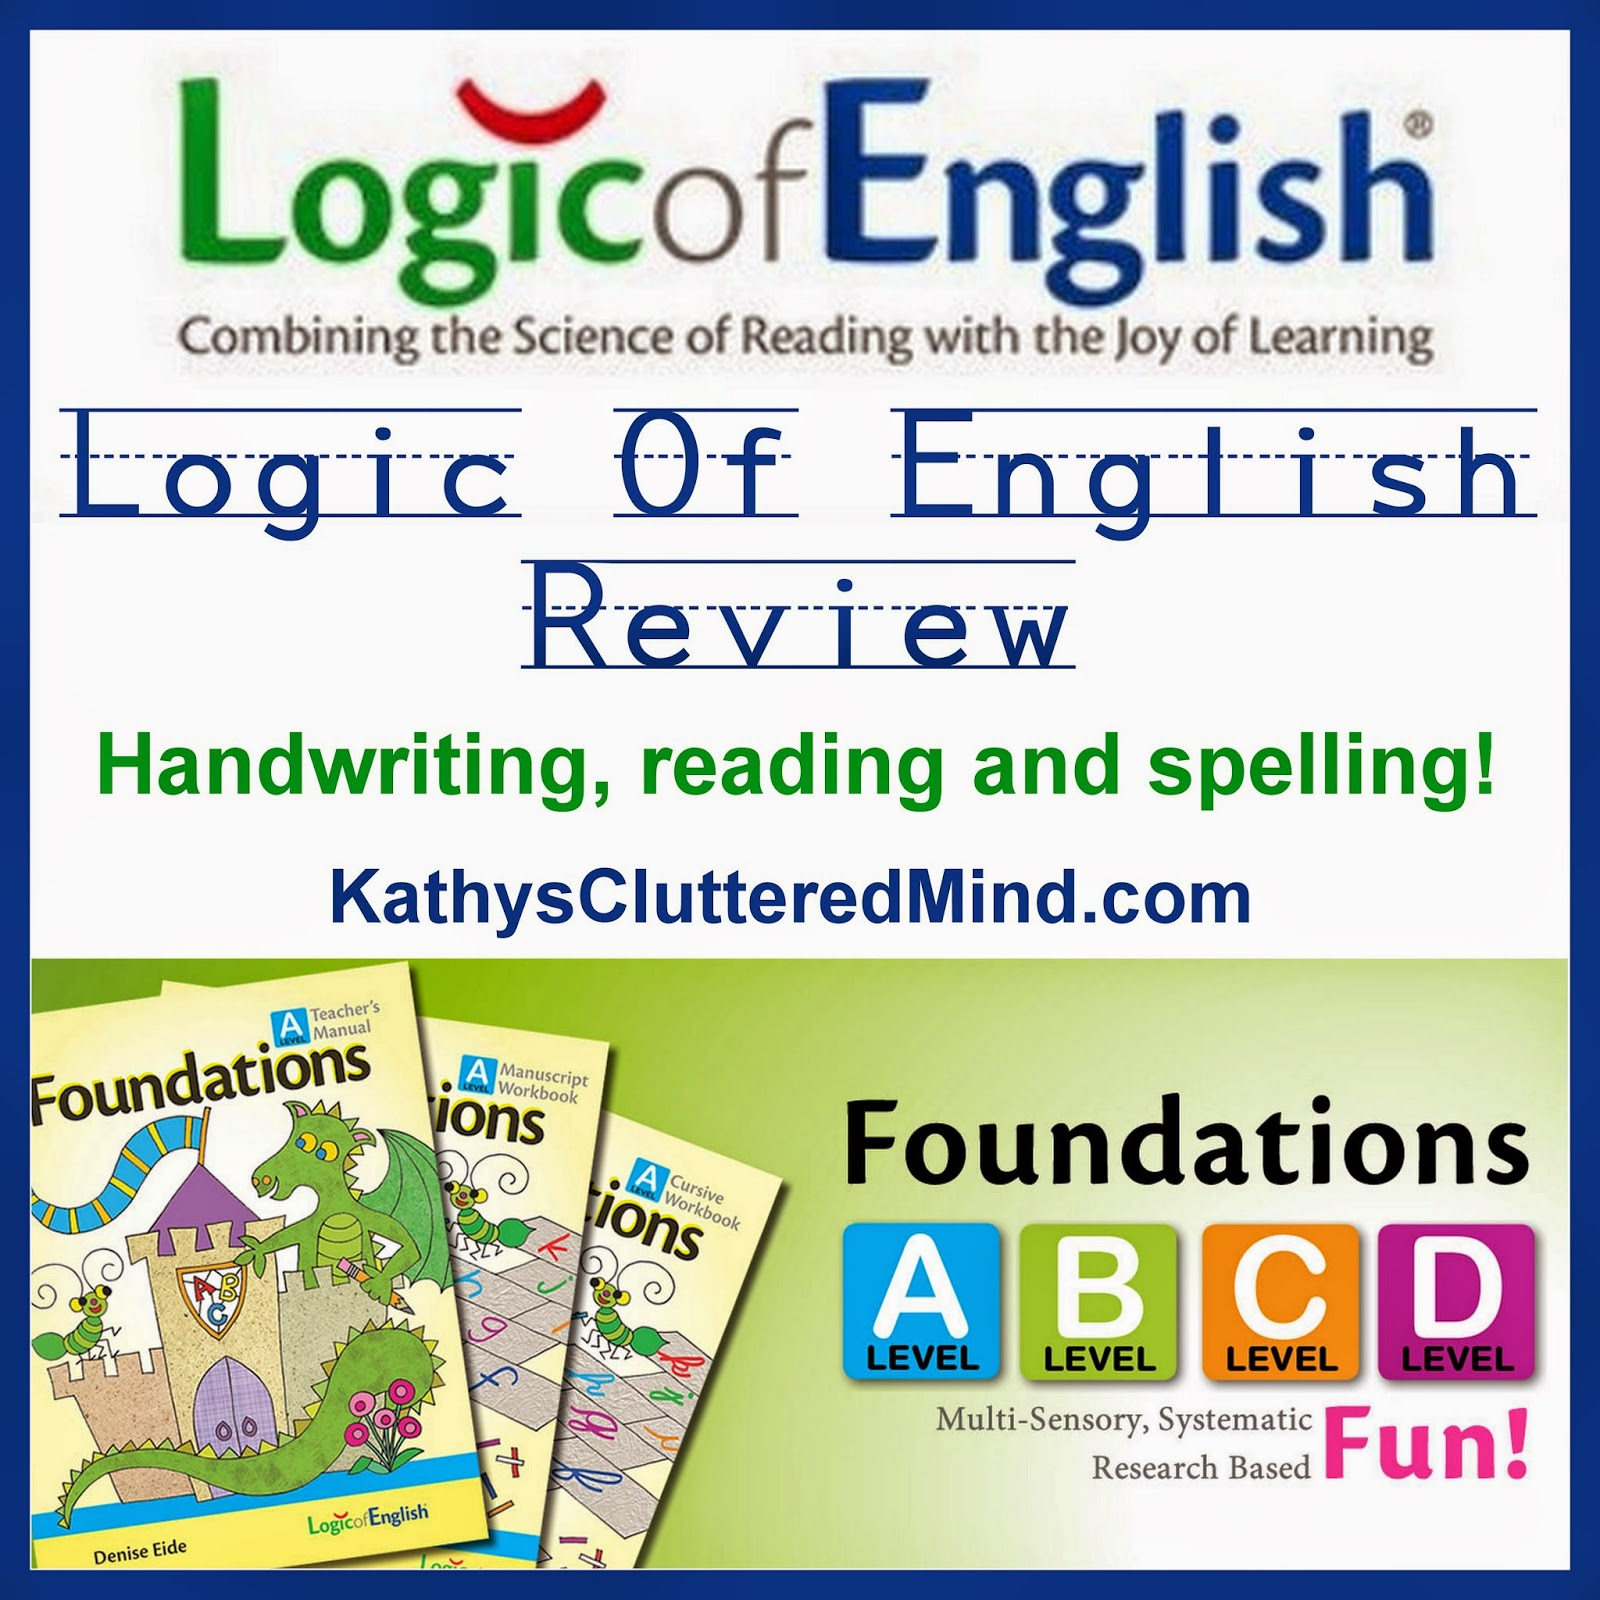 Kathys Cluttered Mind: Logic of English Foundations B Review